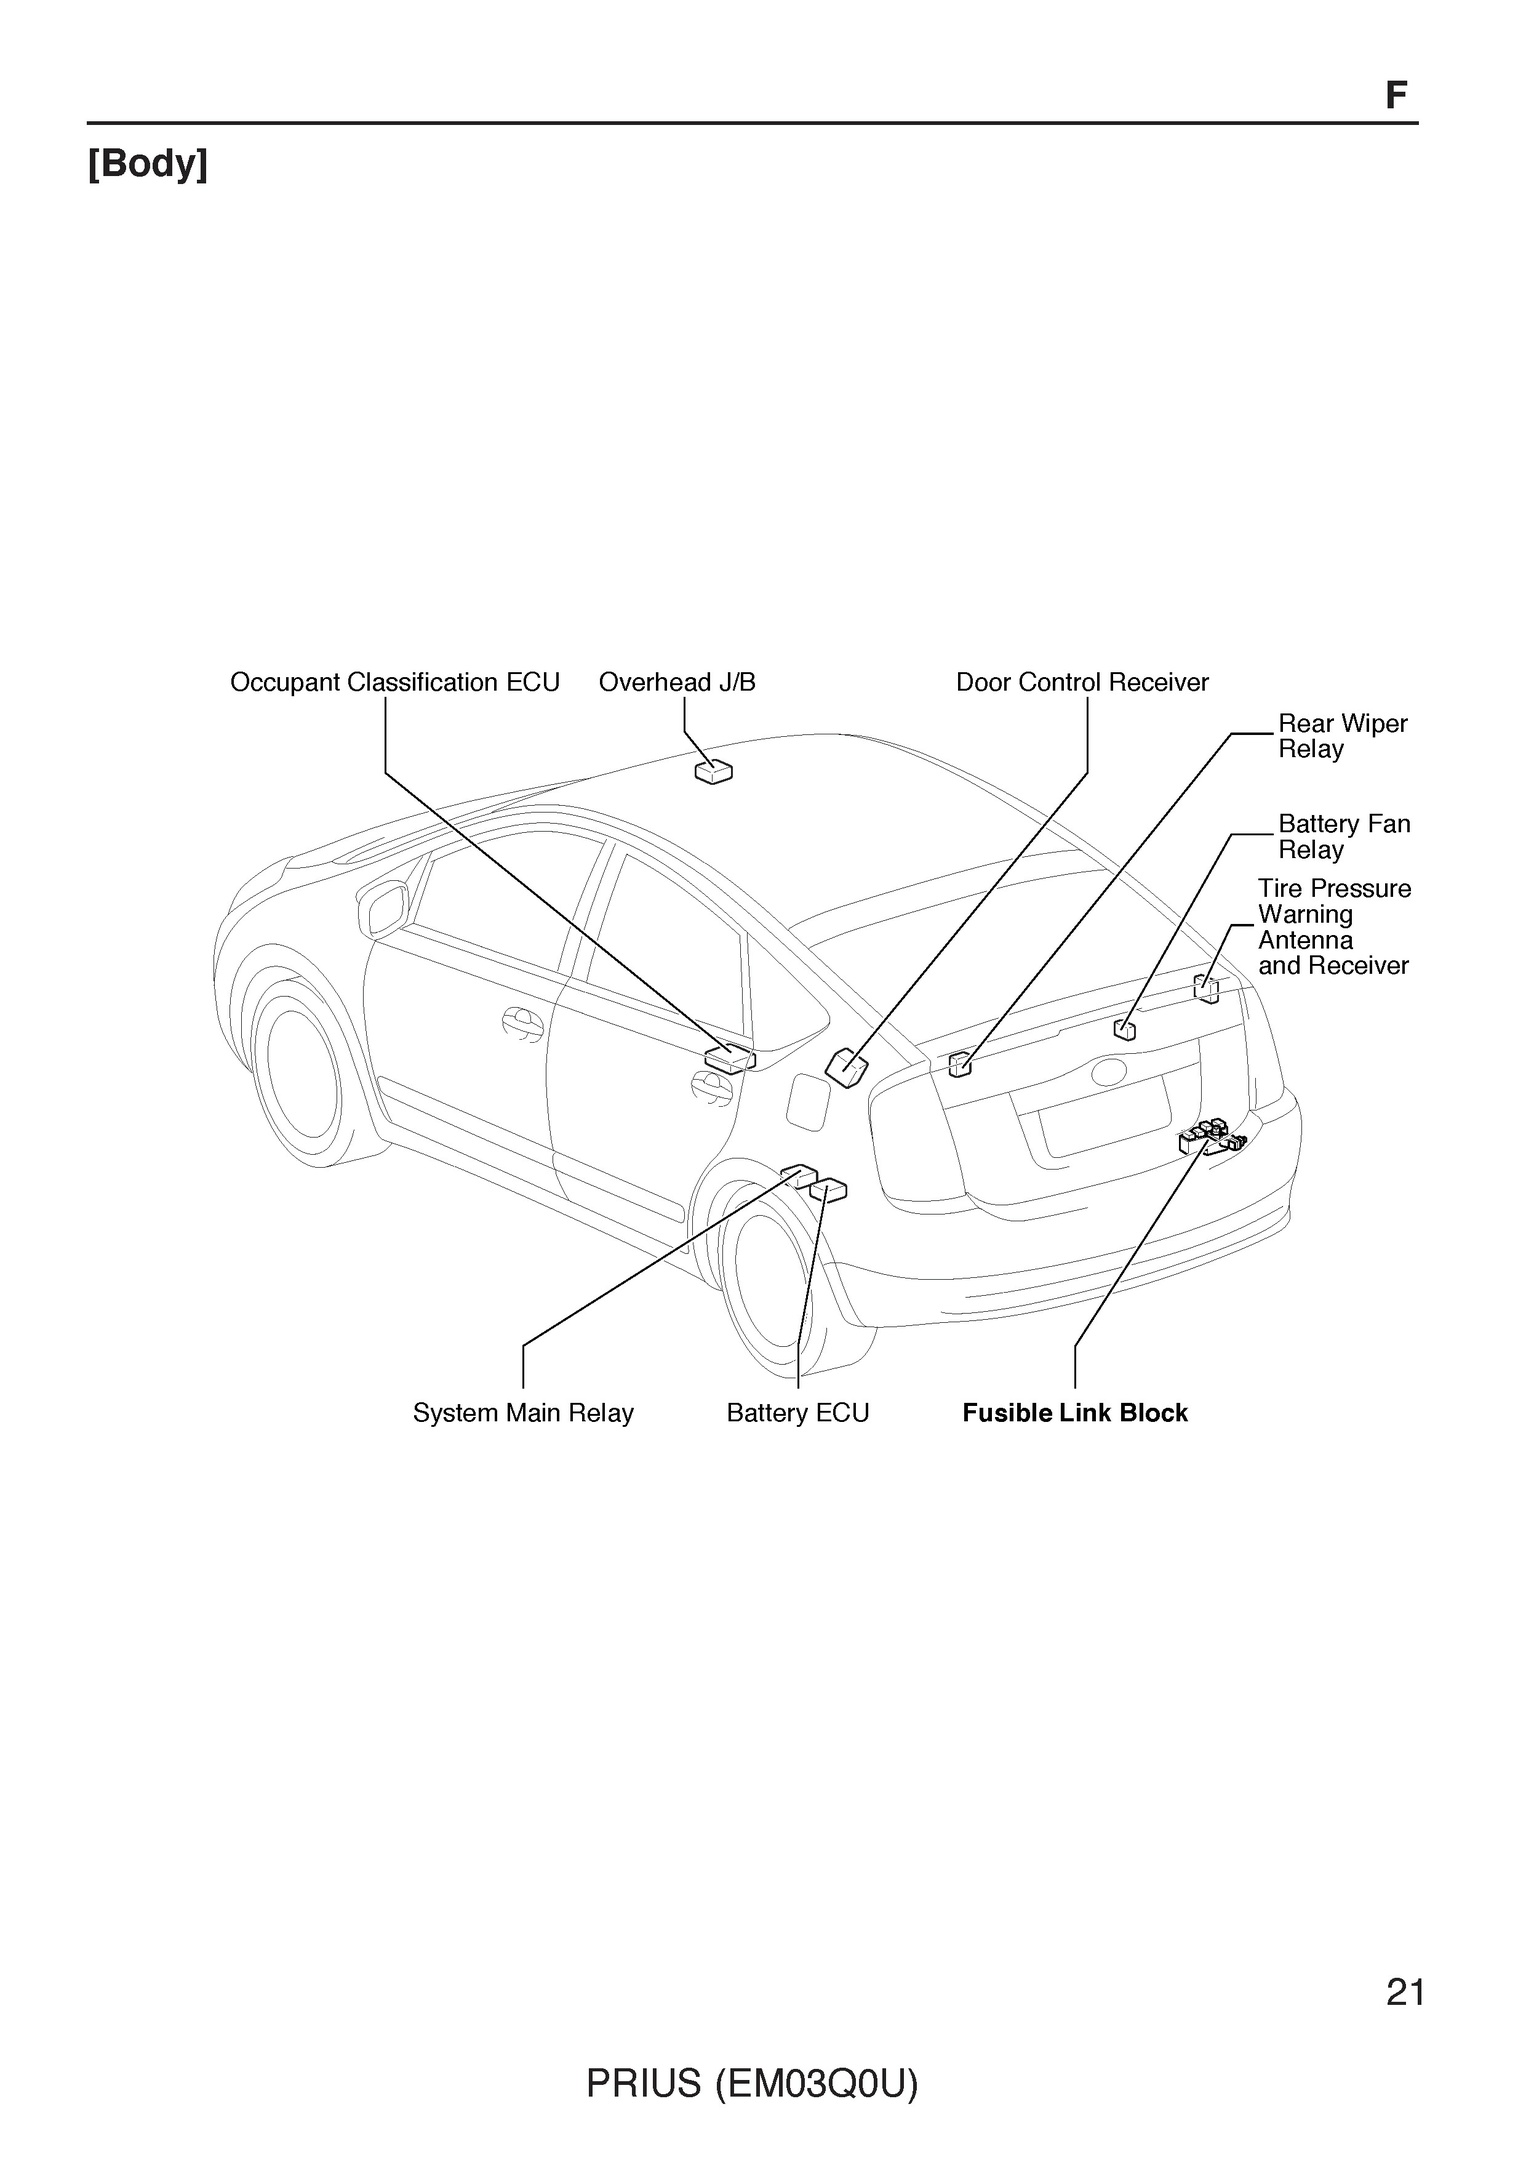 Free 2007 Toyota Prius Oem Electrical Wiring Diagram Pdf Sample Pages